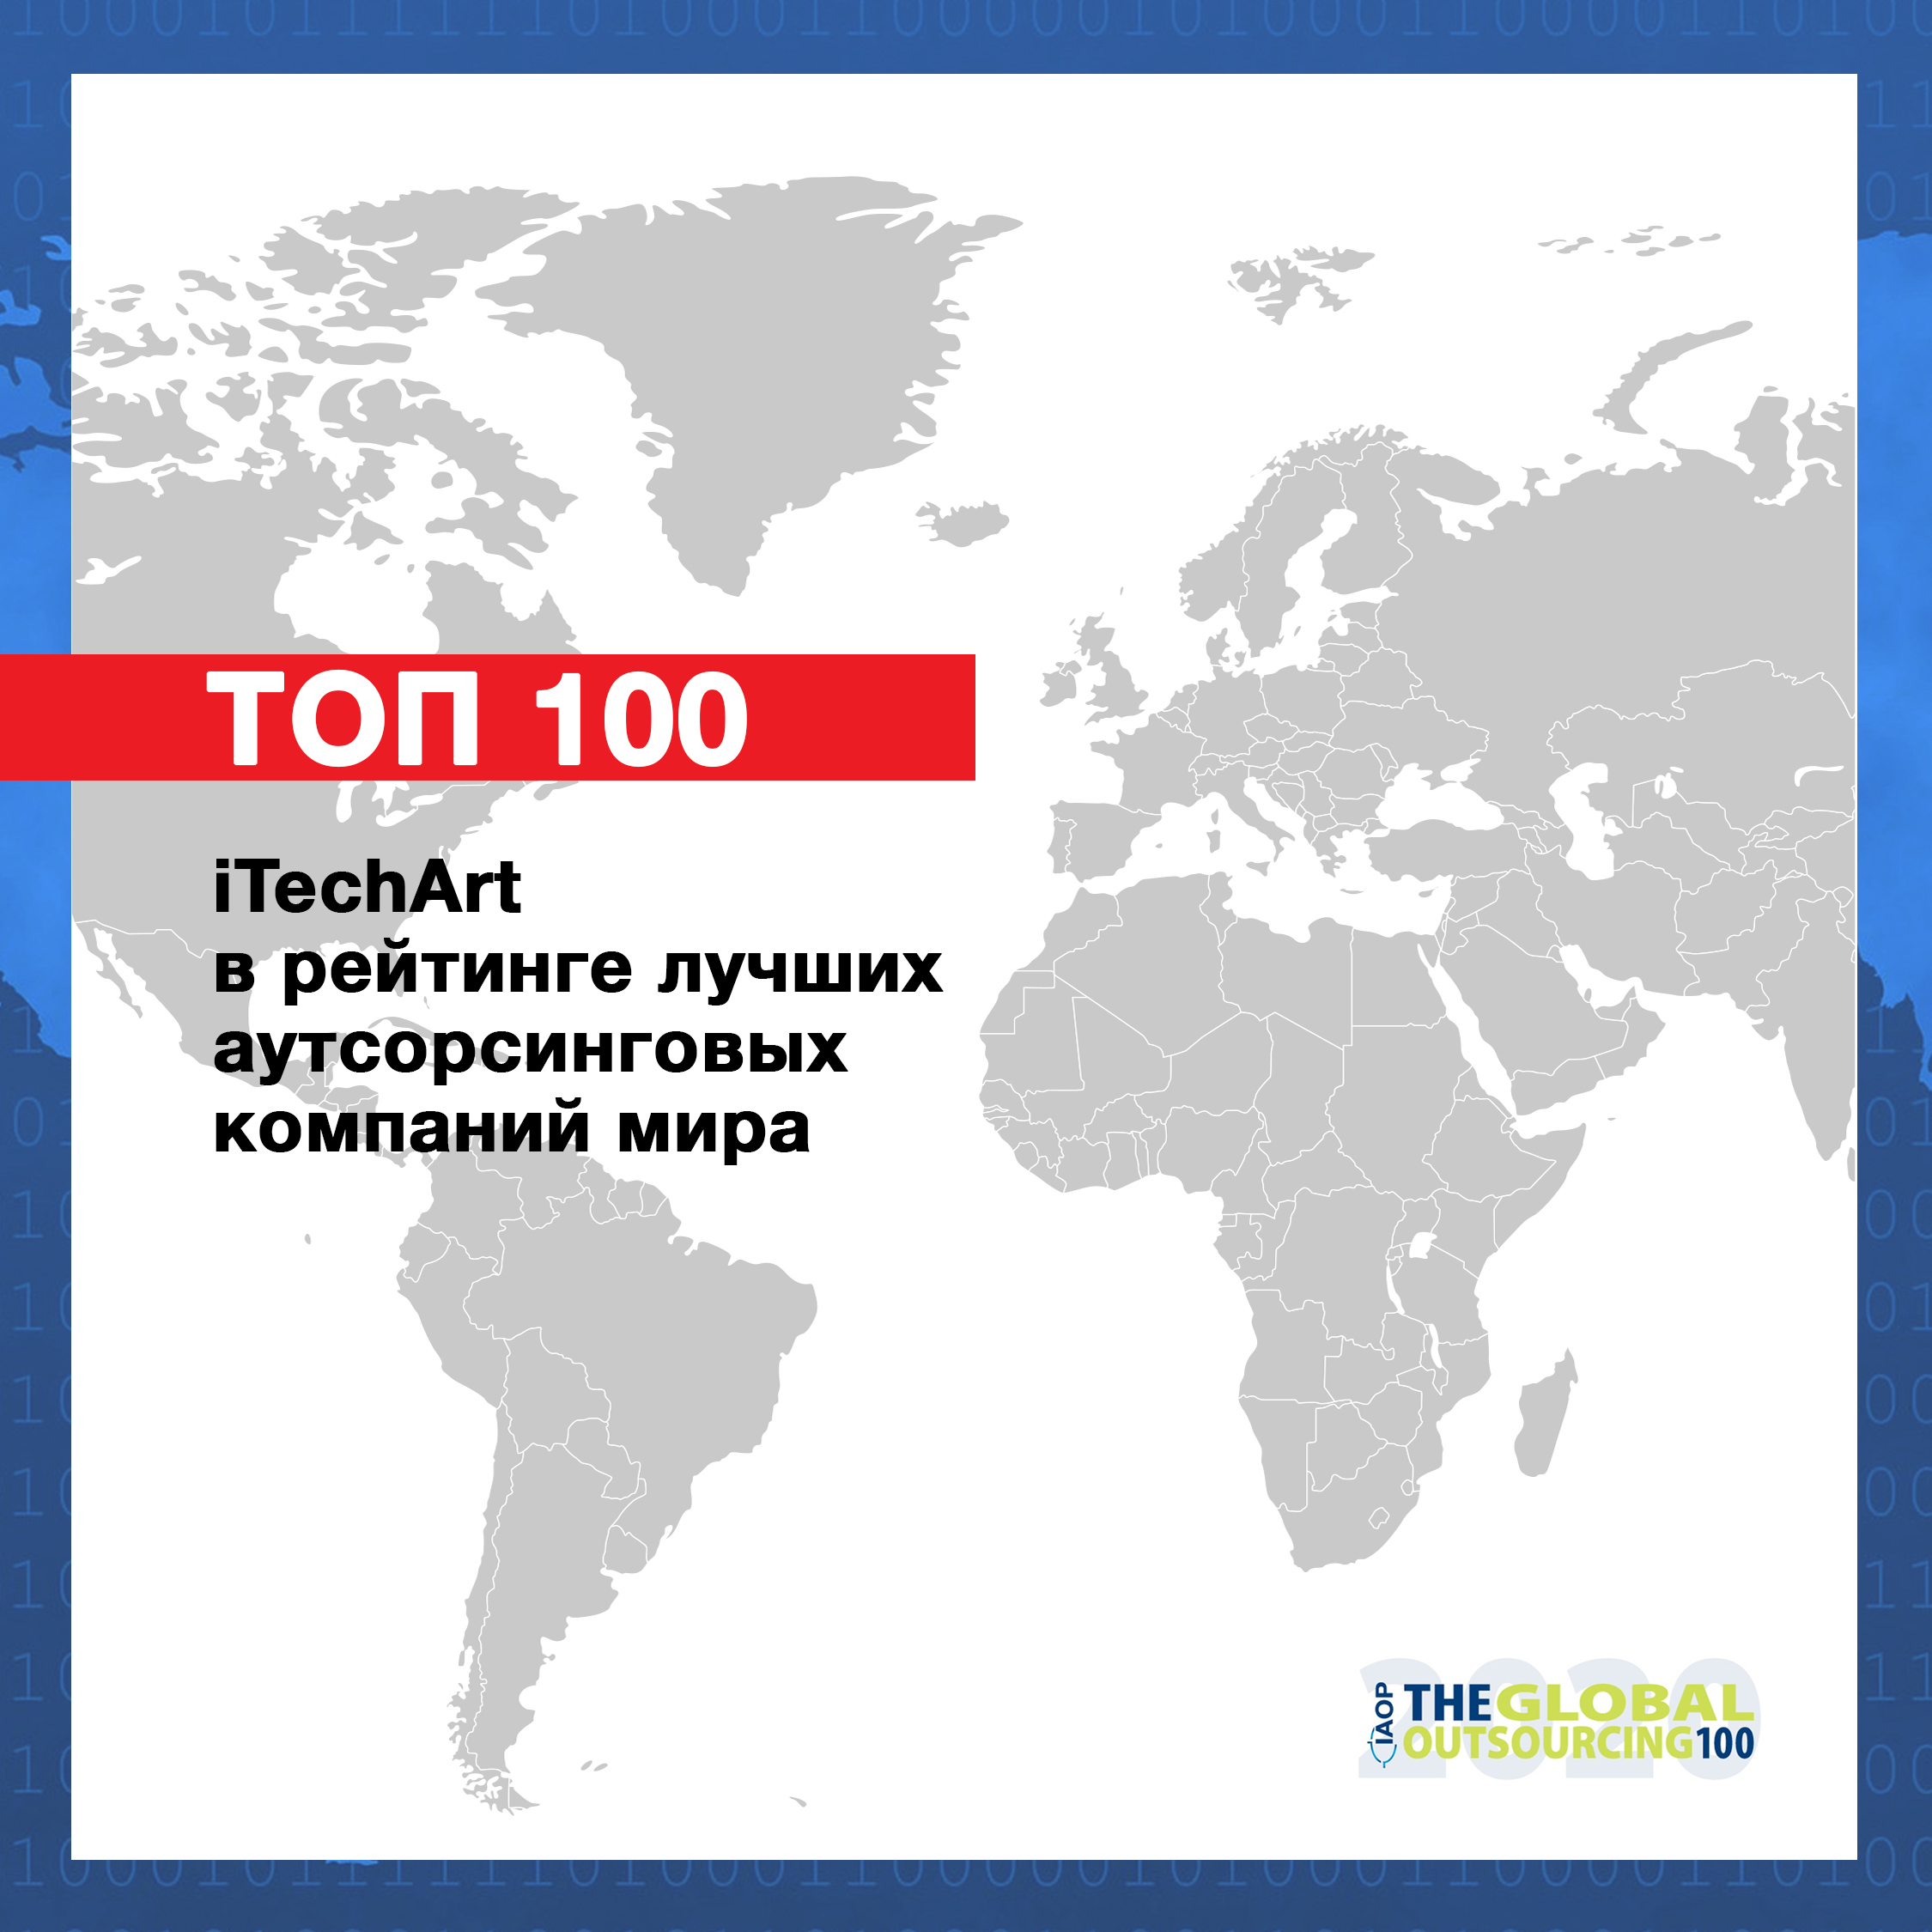 iTechArt вошел в Global Outsourcing 100